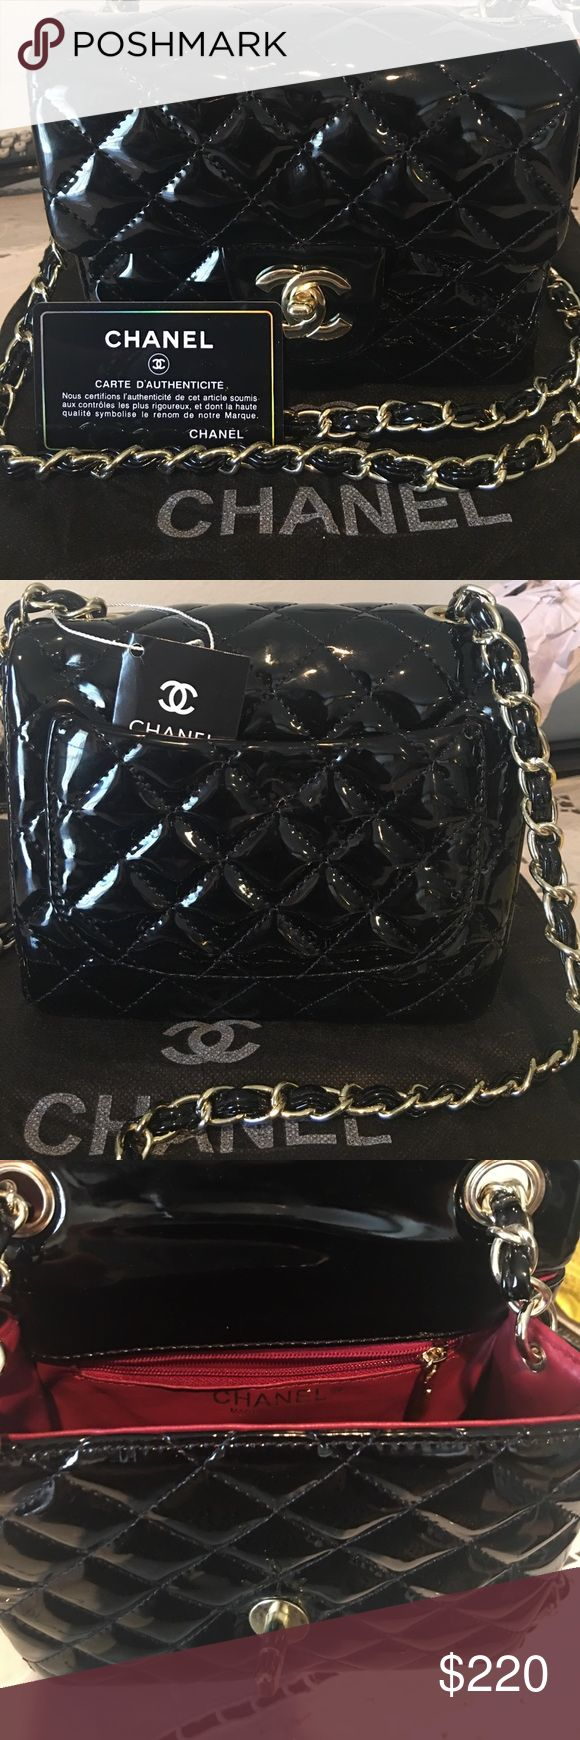 Patent leather Chanel shoulder bag Beautiful classy small size patent leather bag. New with tag. Comes with with card no serial# Top quality. Receive a free small size Chanel swimwear. chanel Bags Crossbody Bags